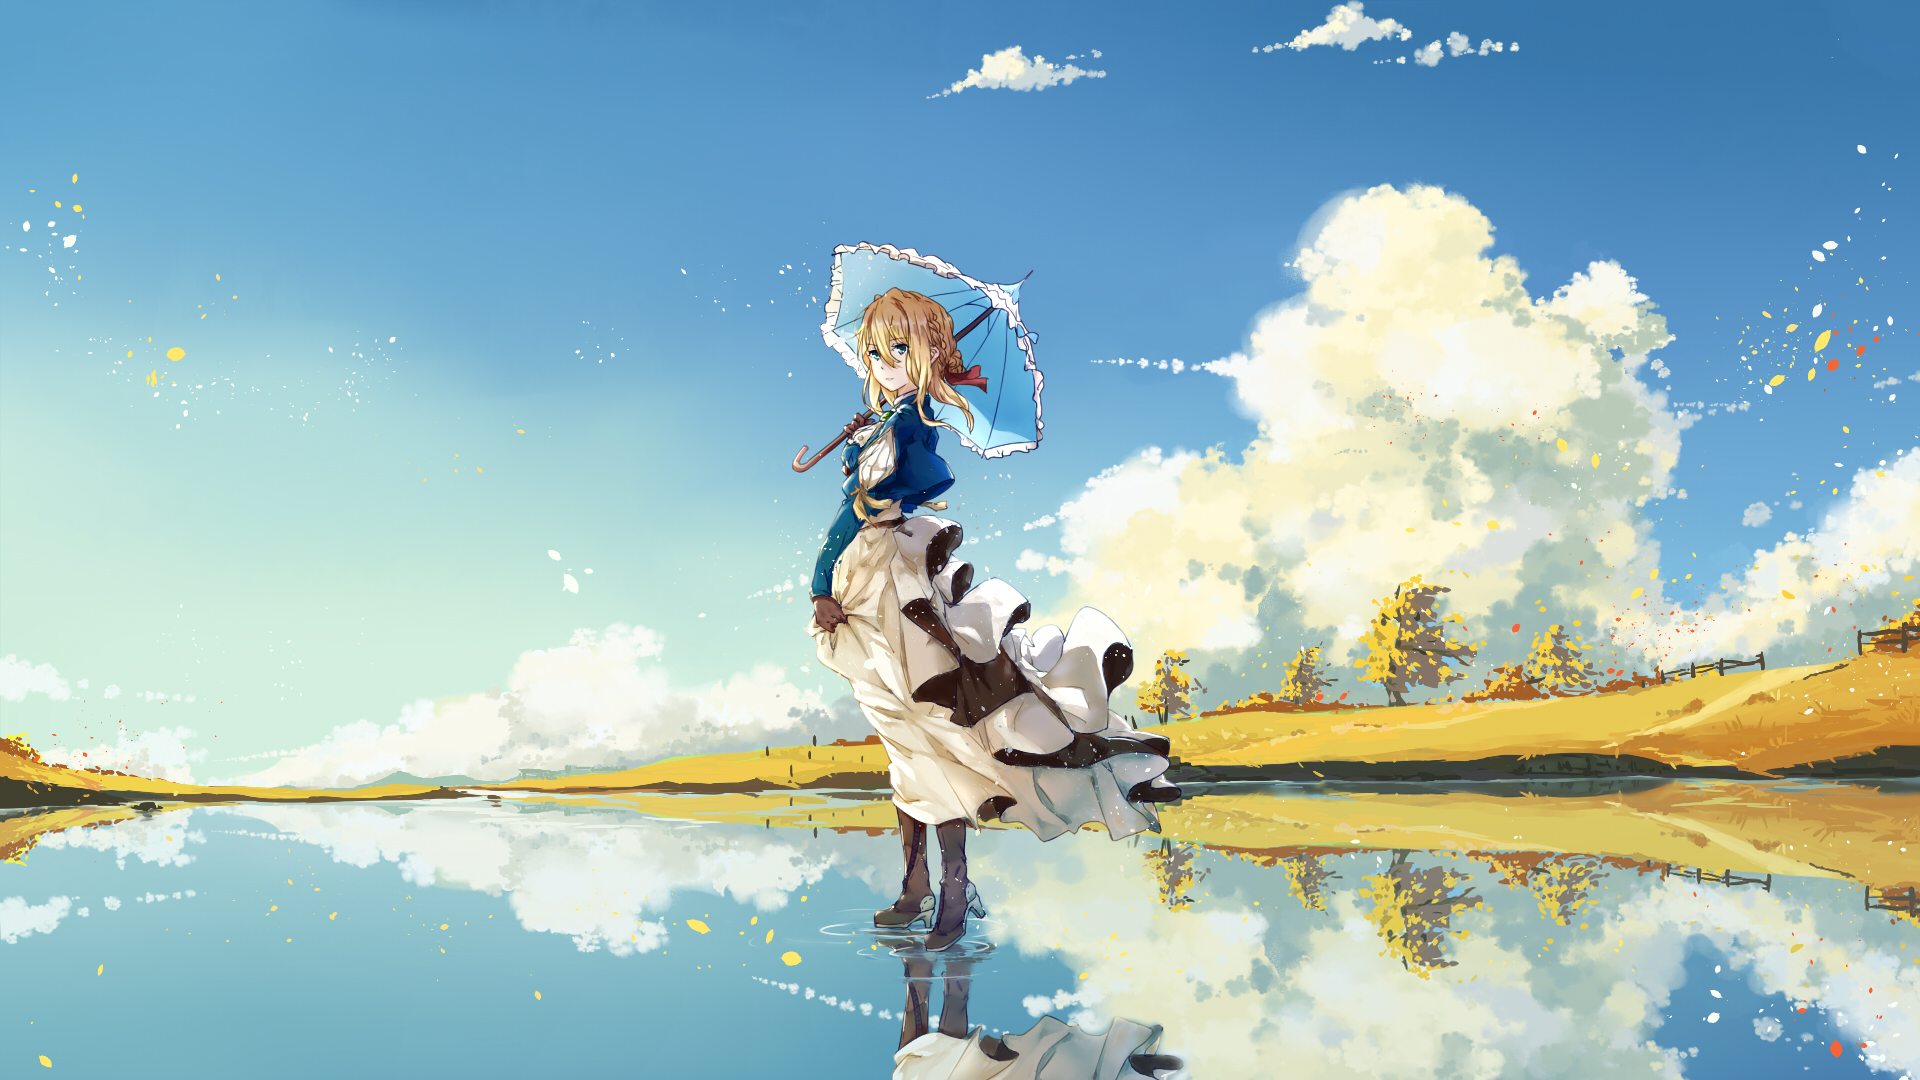 Violet Evergarden Wallpapers High Quality   Download Free